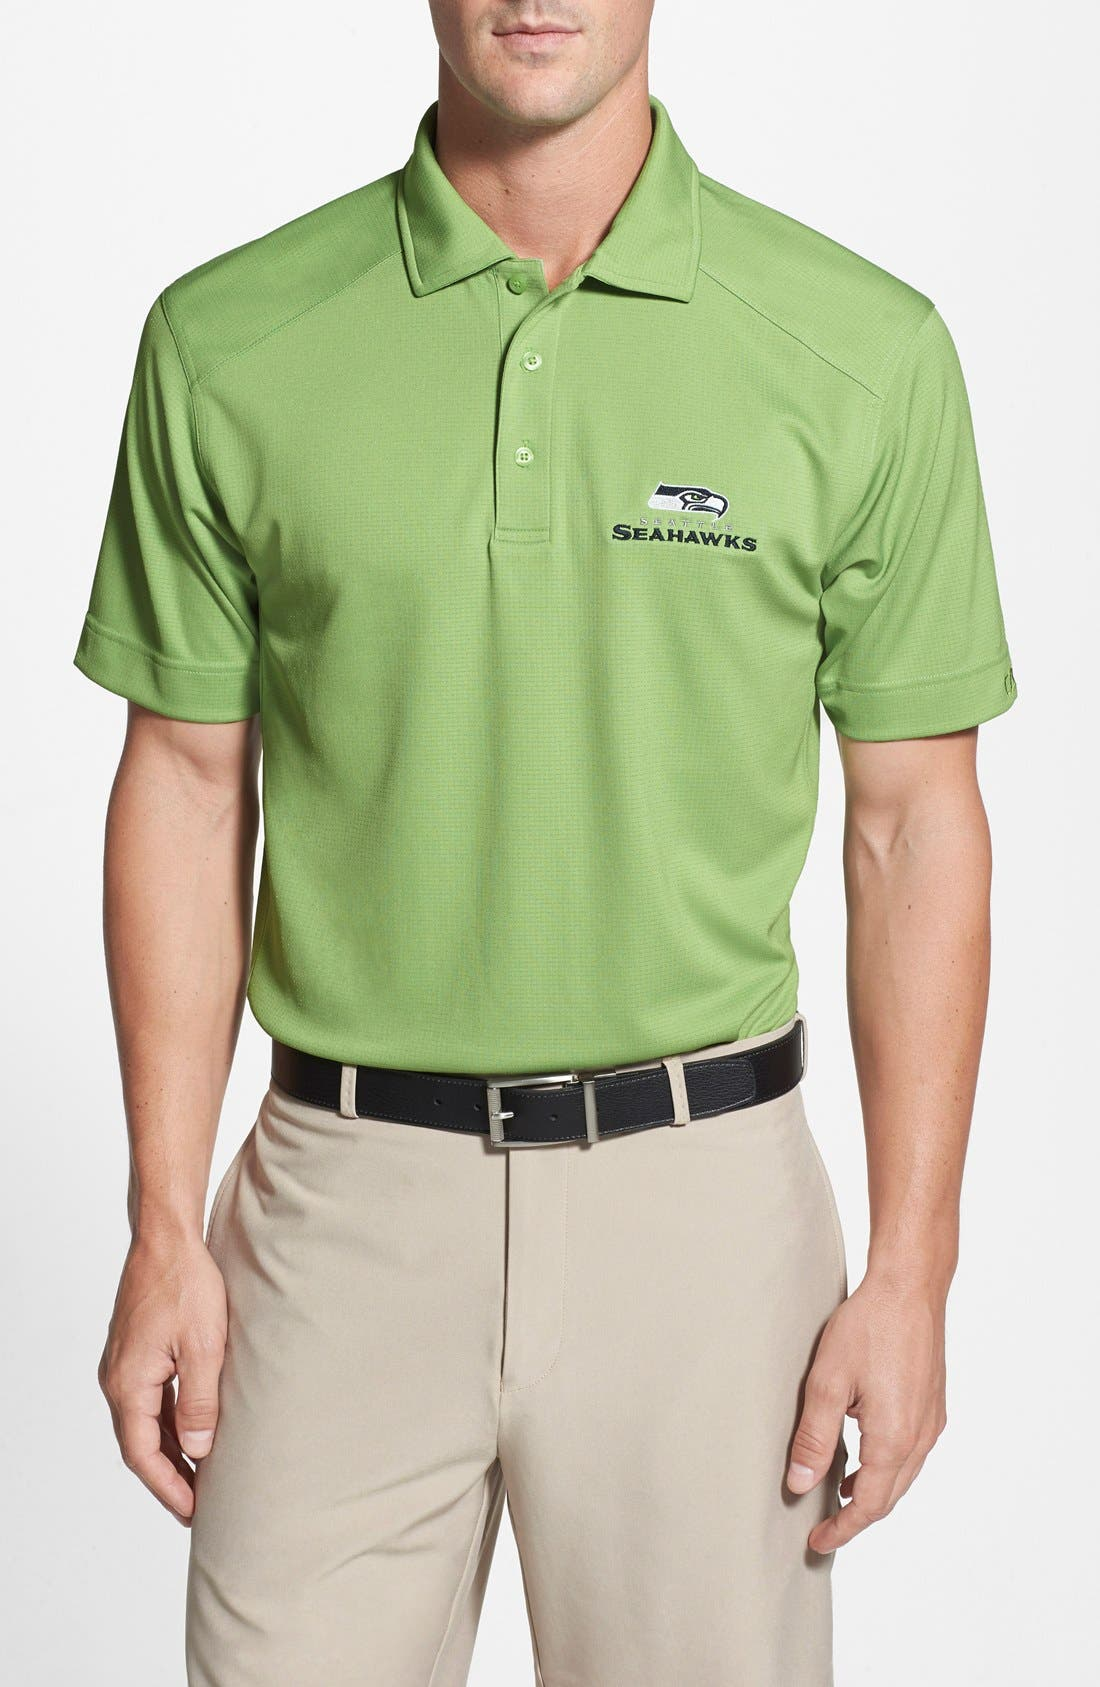 Seattle Seahawks - Genre DryTec Moisture Wicking Polo,                             Main thumbnail 1, color,                             333